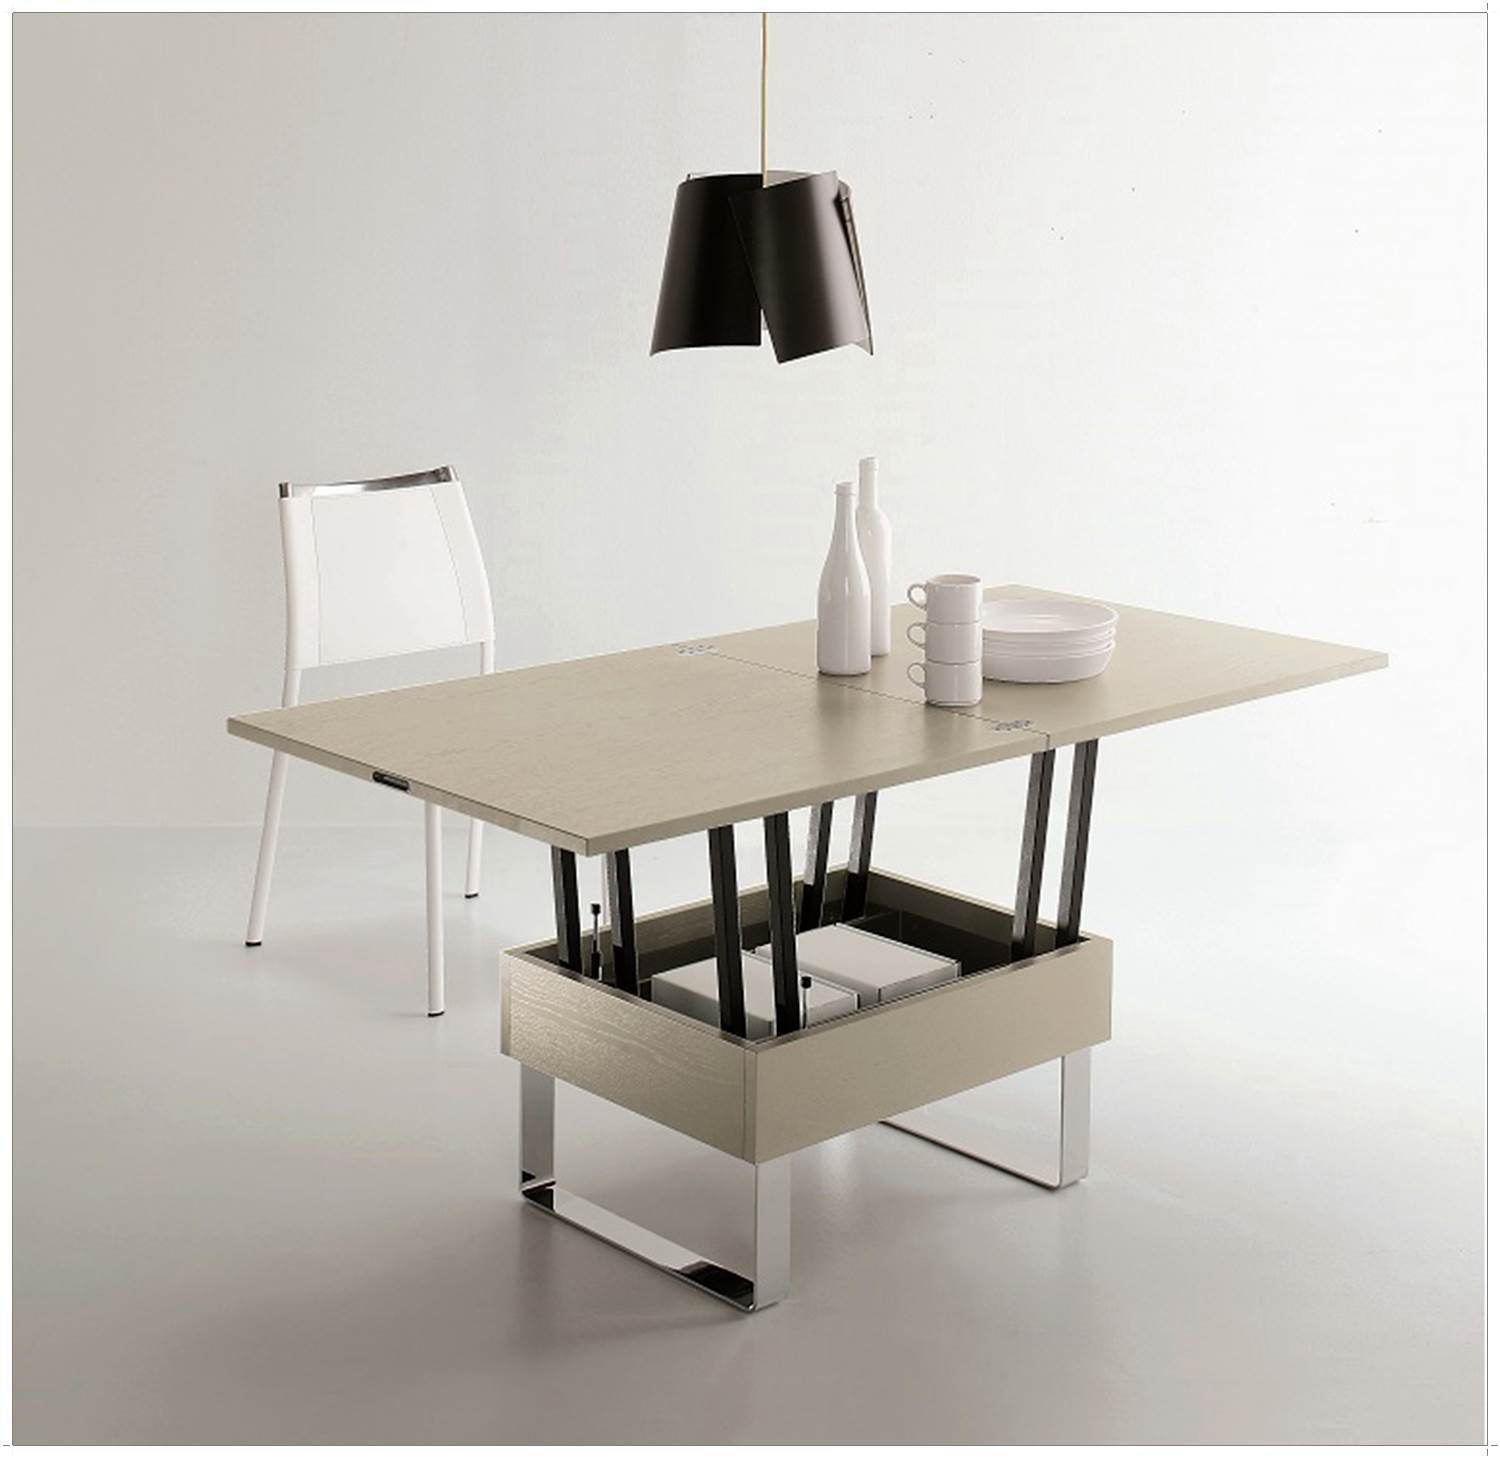 Table basse relevable extensible ikea lille maison - Table basse extensible relevable ikea ...